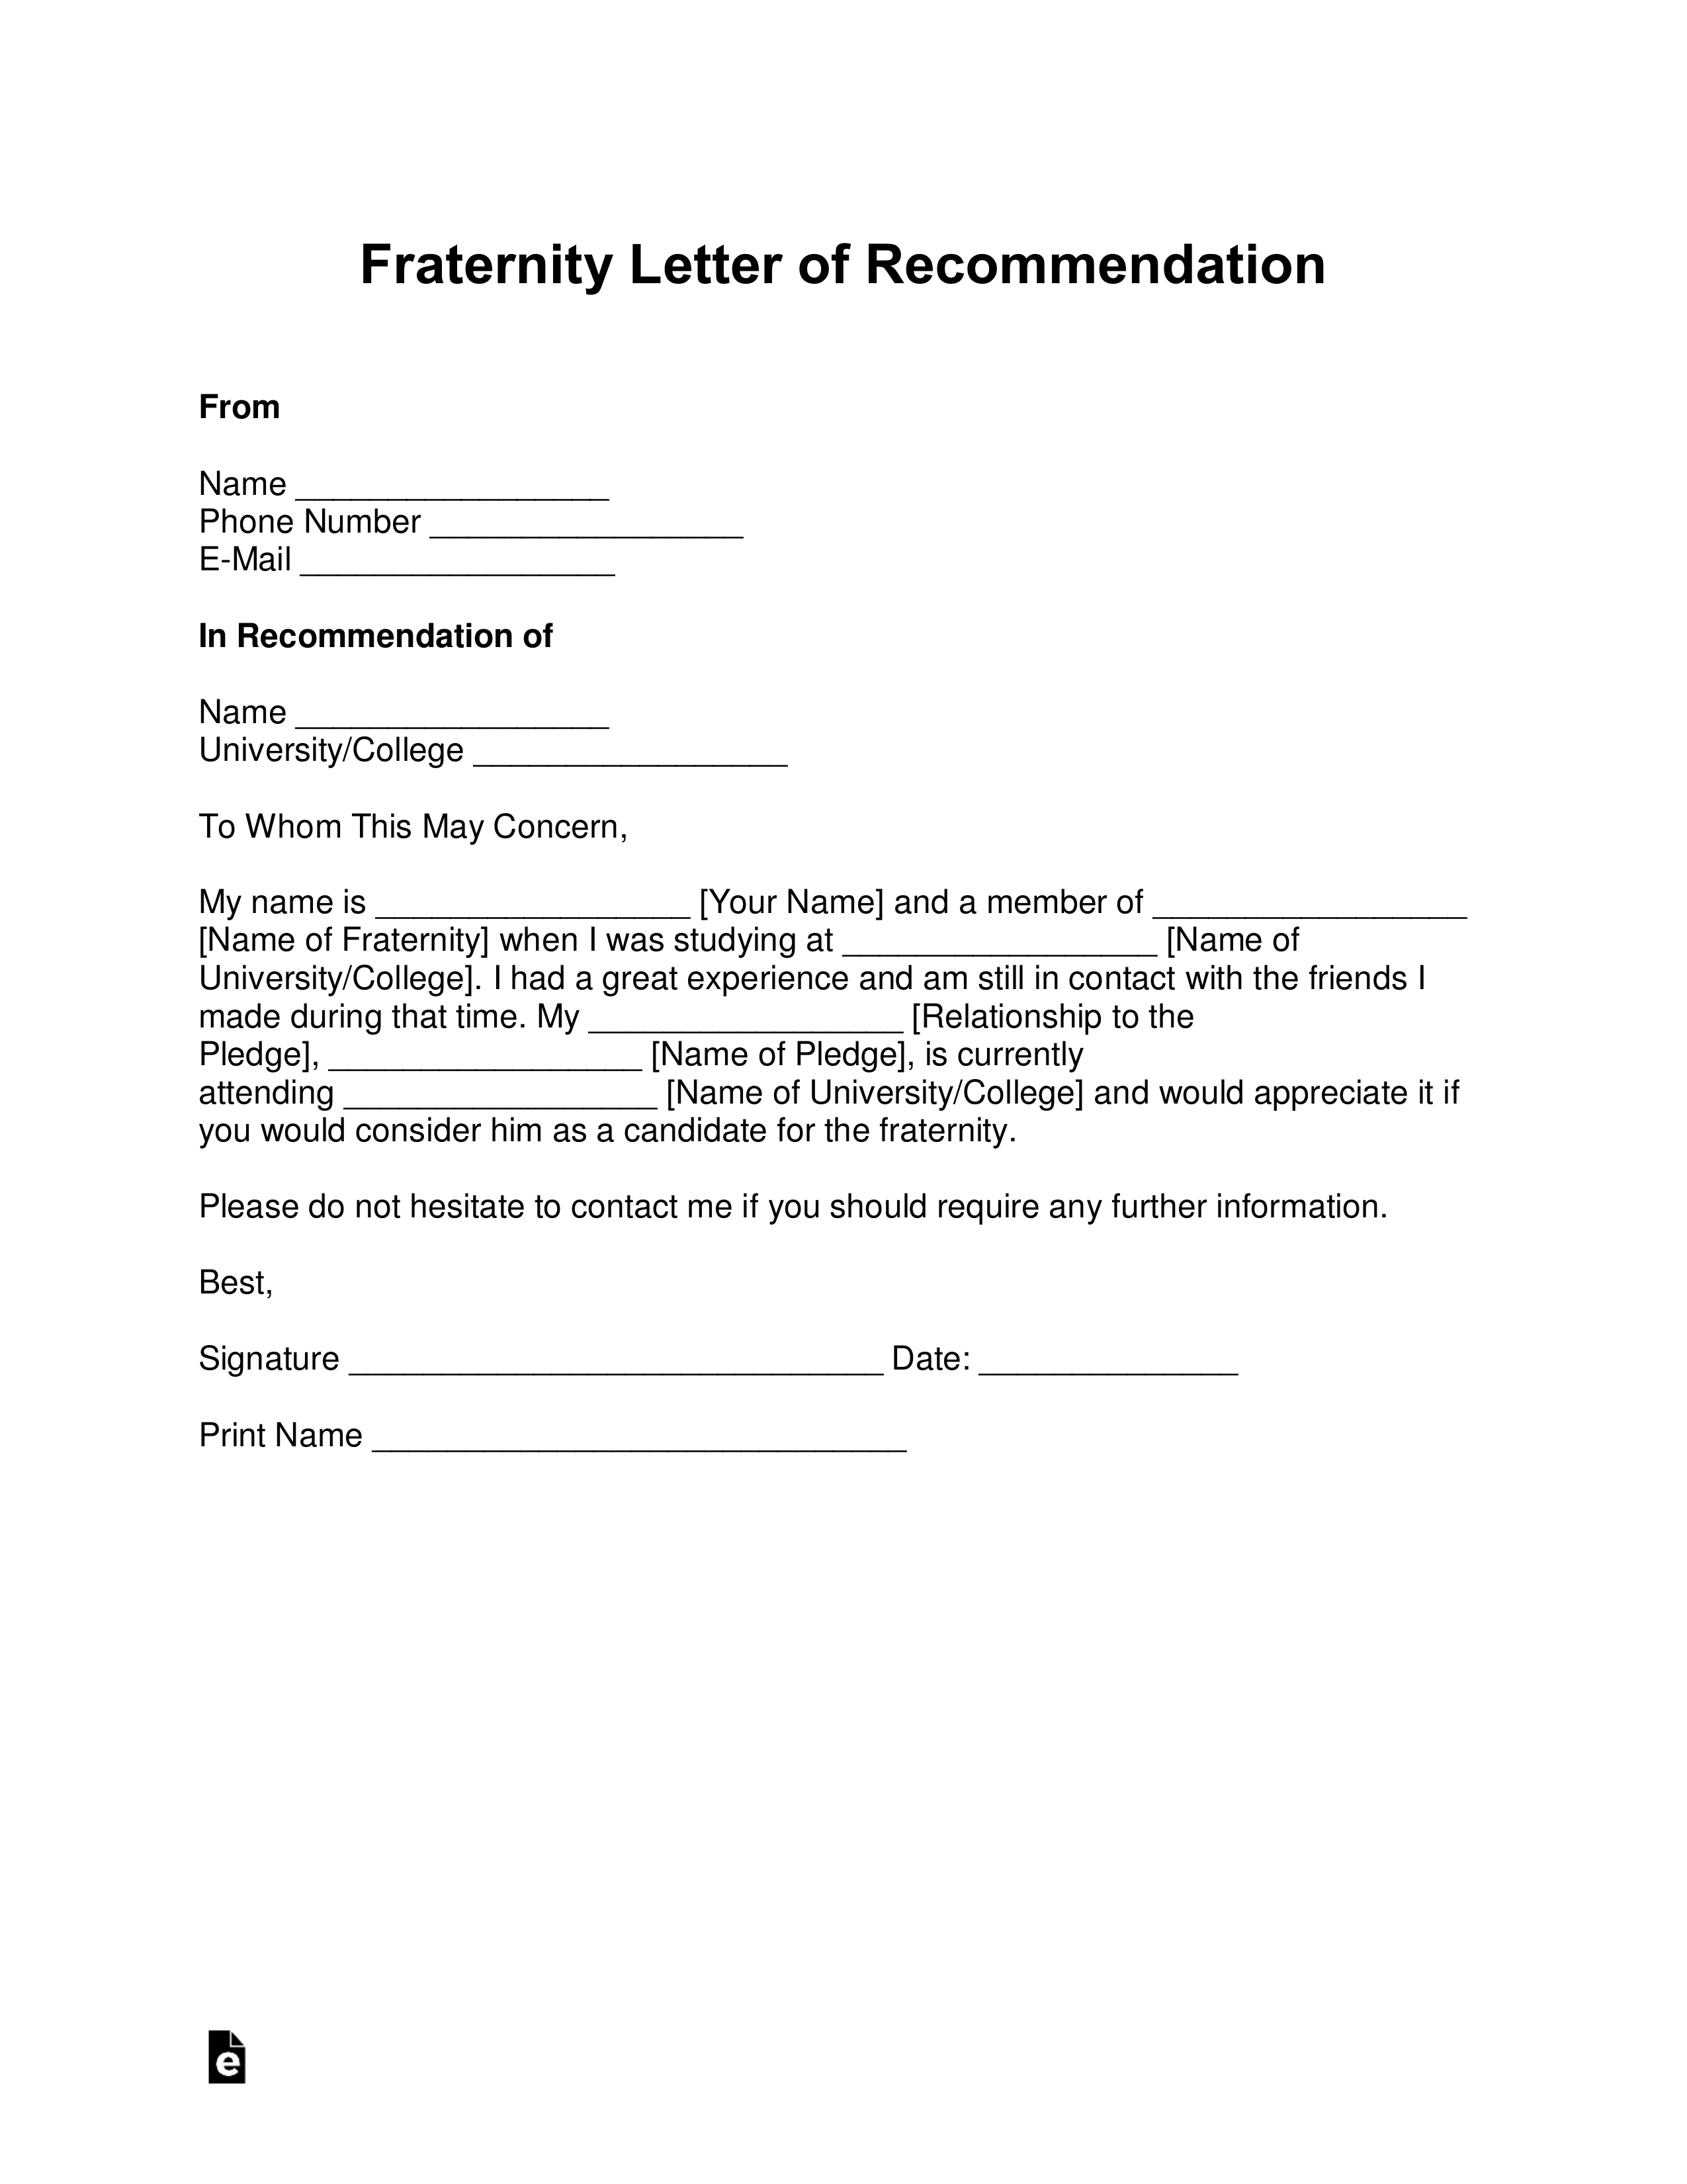 letter of recommendation for fraternity